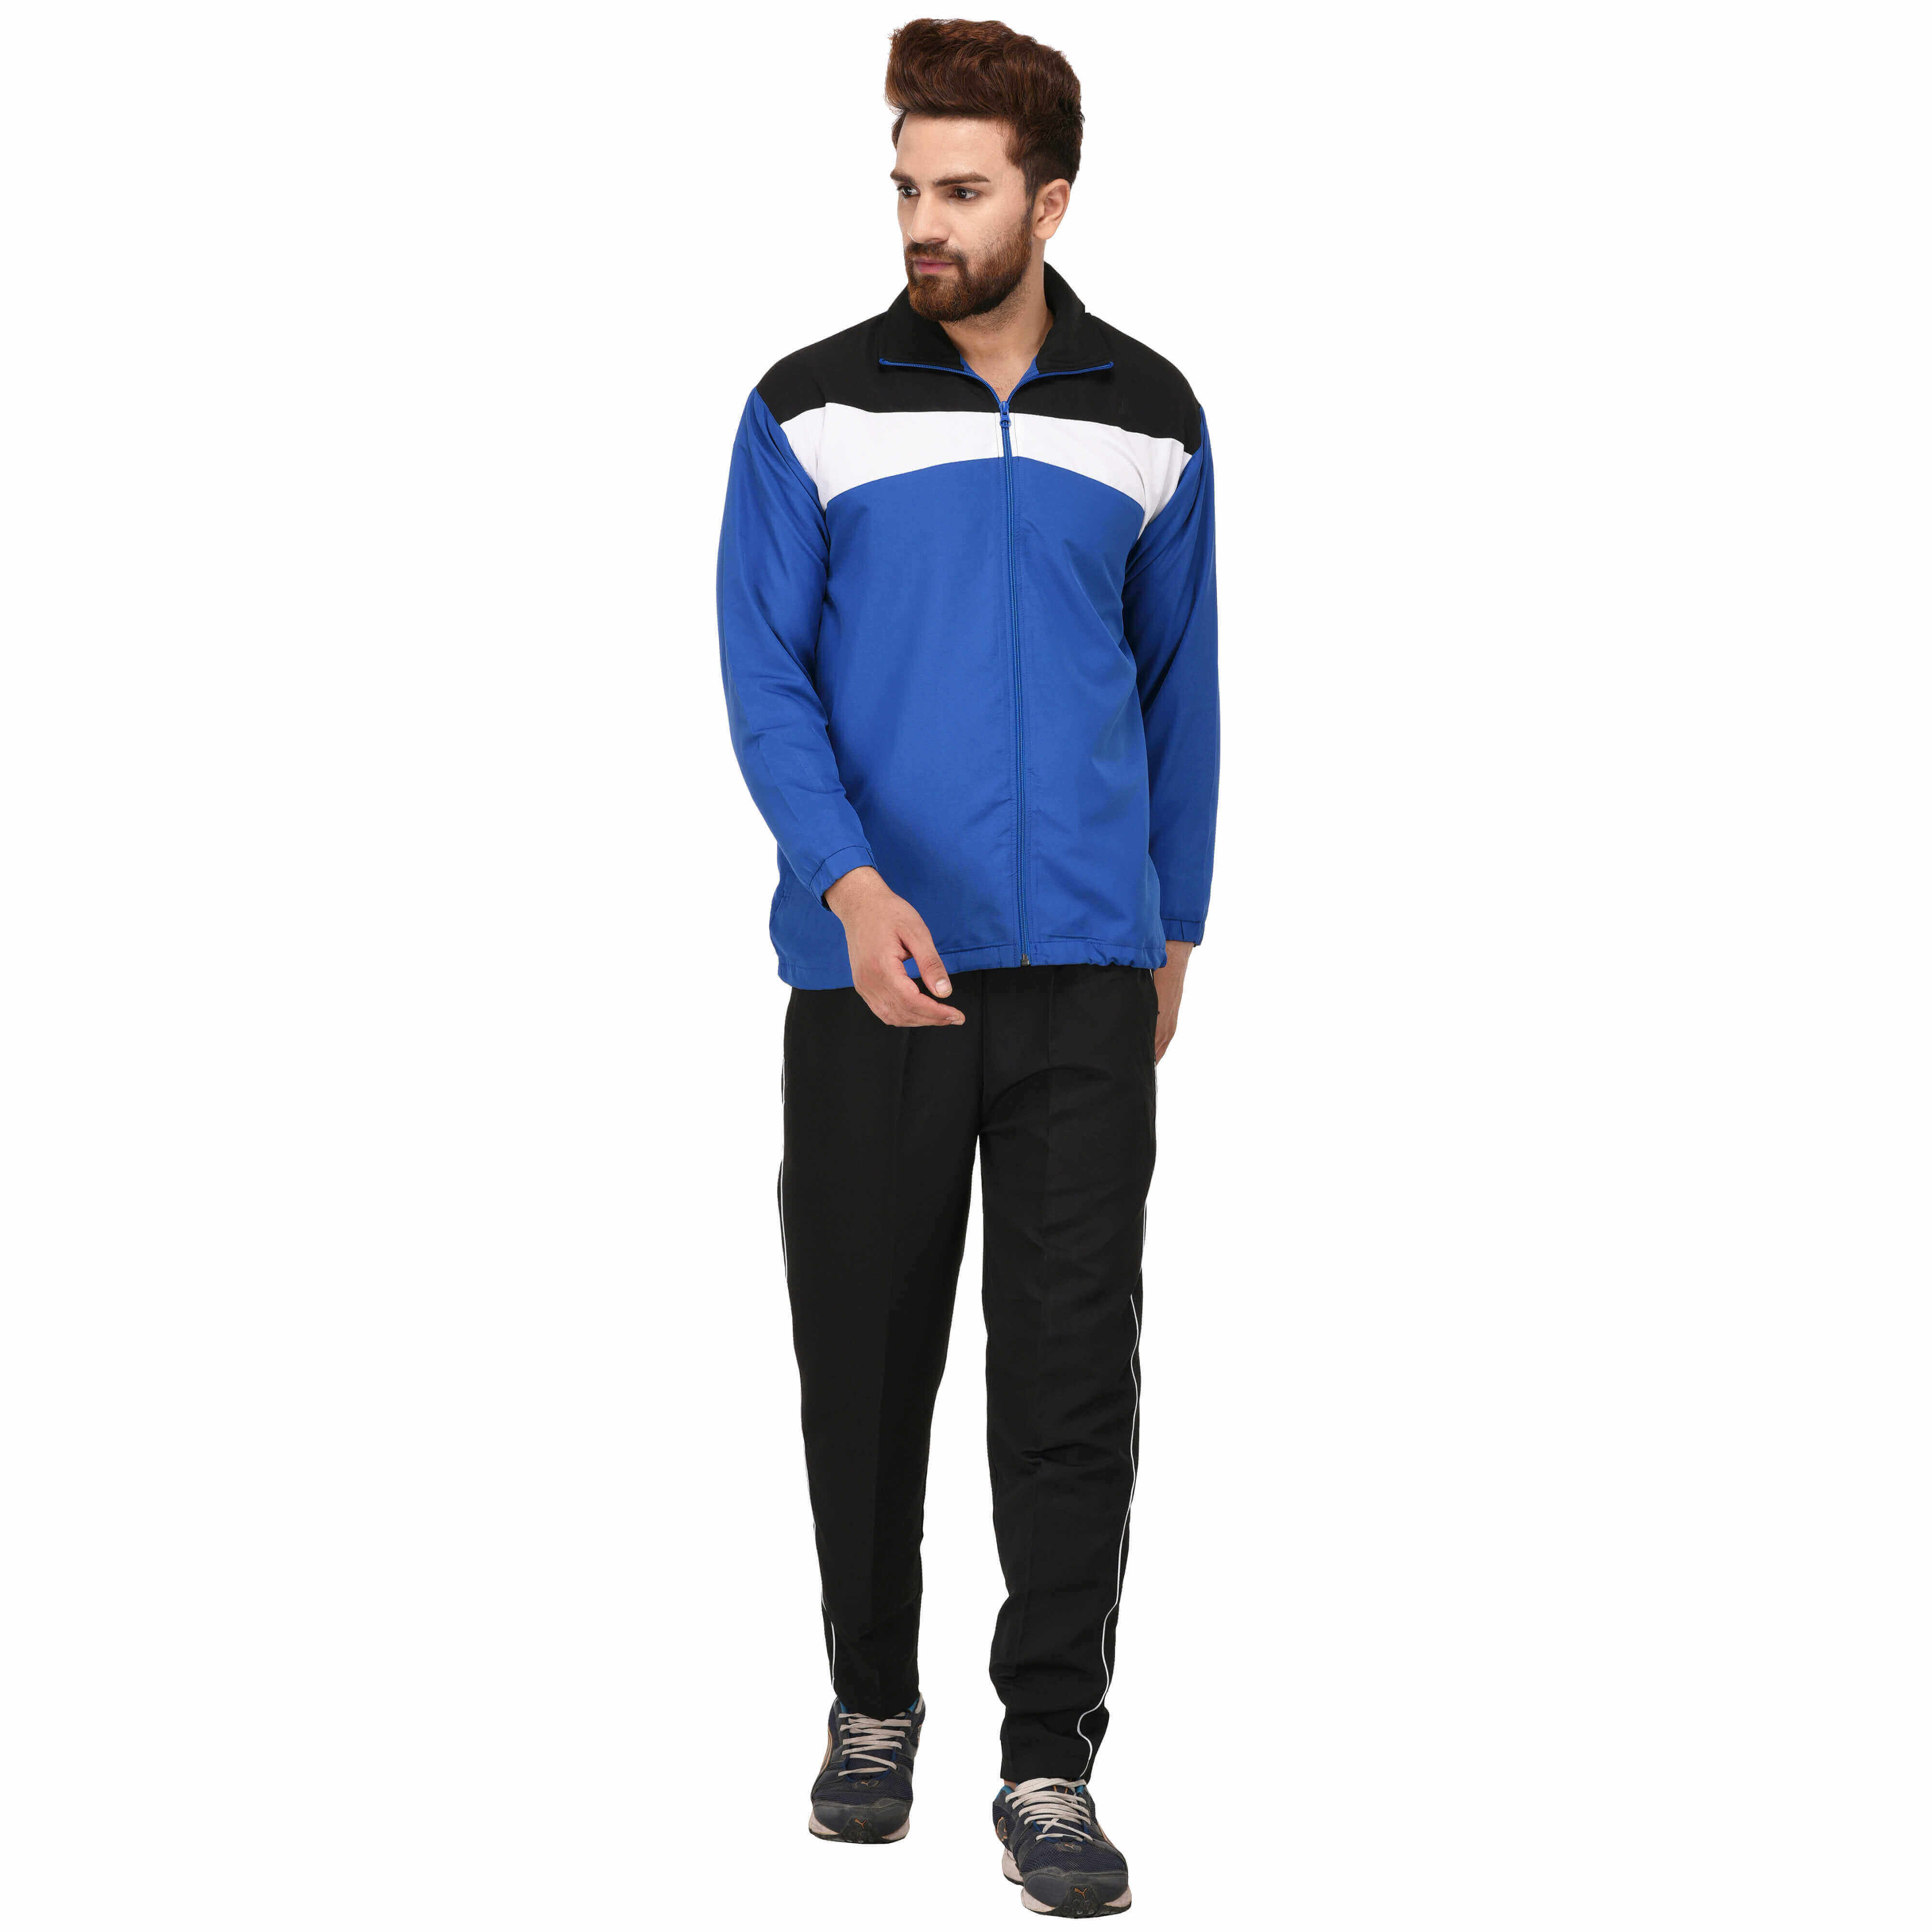 Mens Tracksuits Manufacturers in Thiruvananthapuram